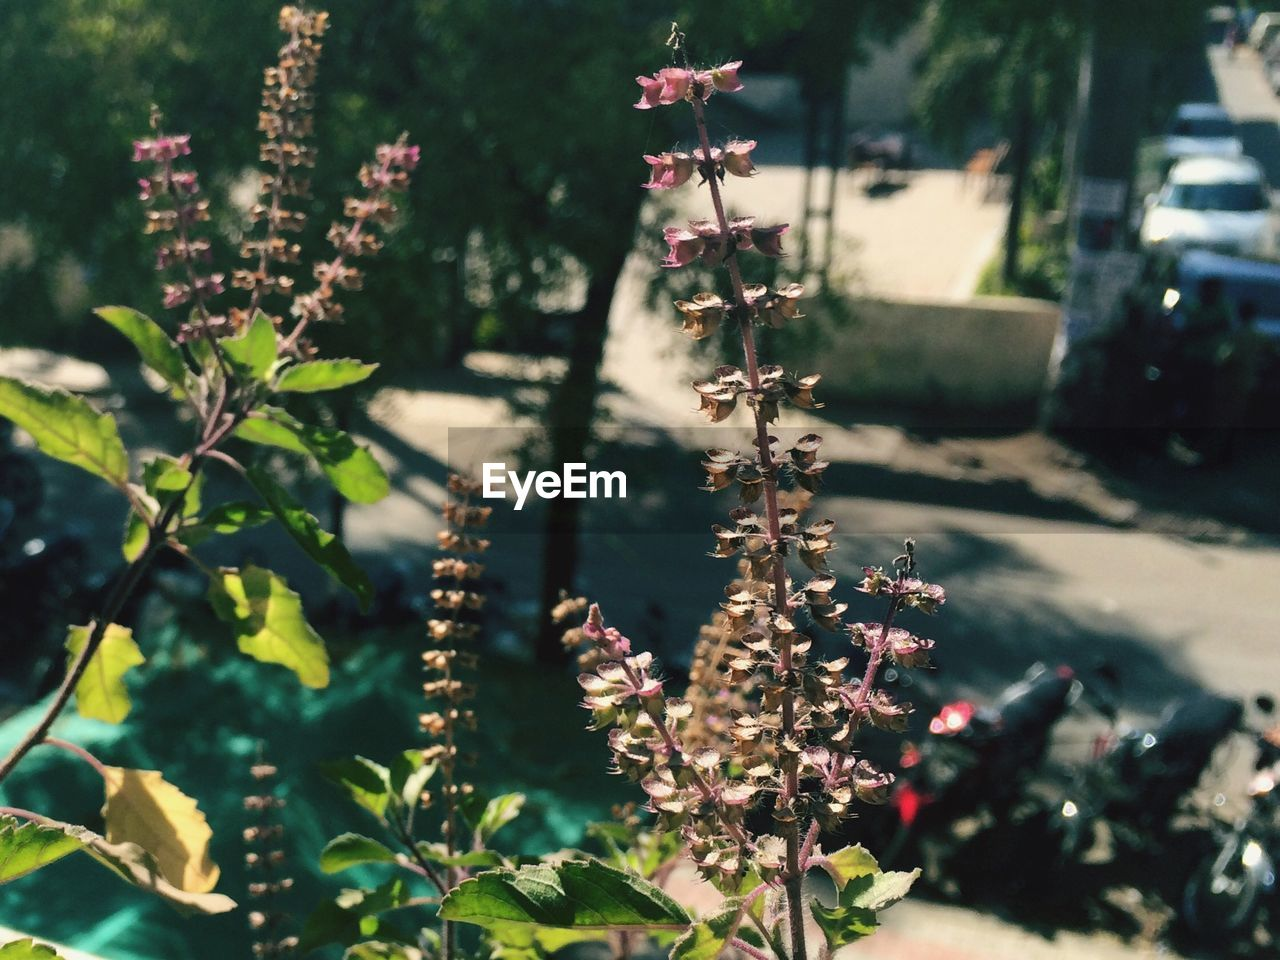 plant, growth, nature, no people, day, focus on foreground, flower, outdoors, tree, sunlight, leaf, beauty in nature, fragility, freshness, close-up